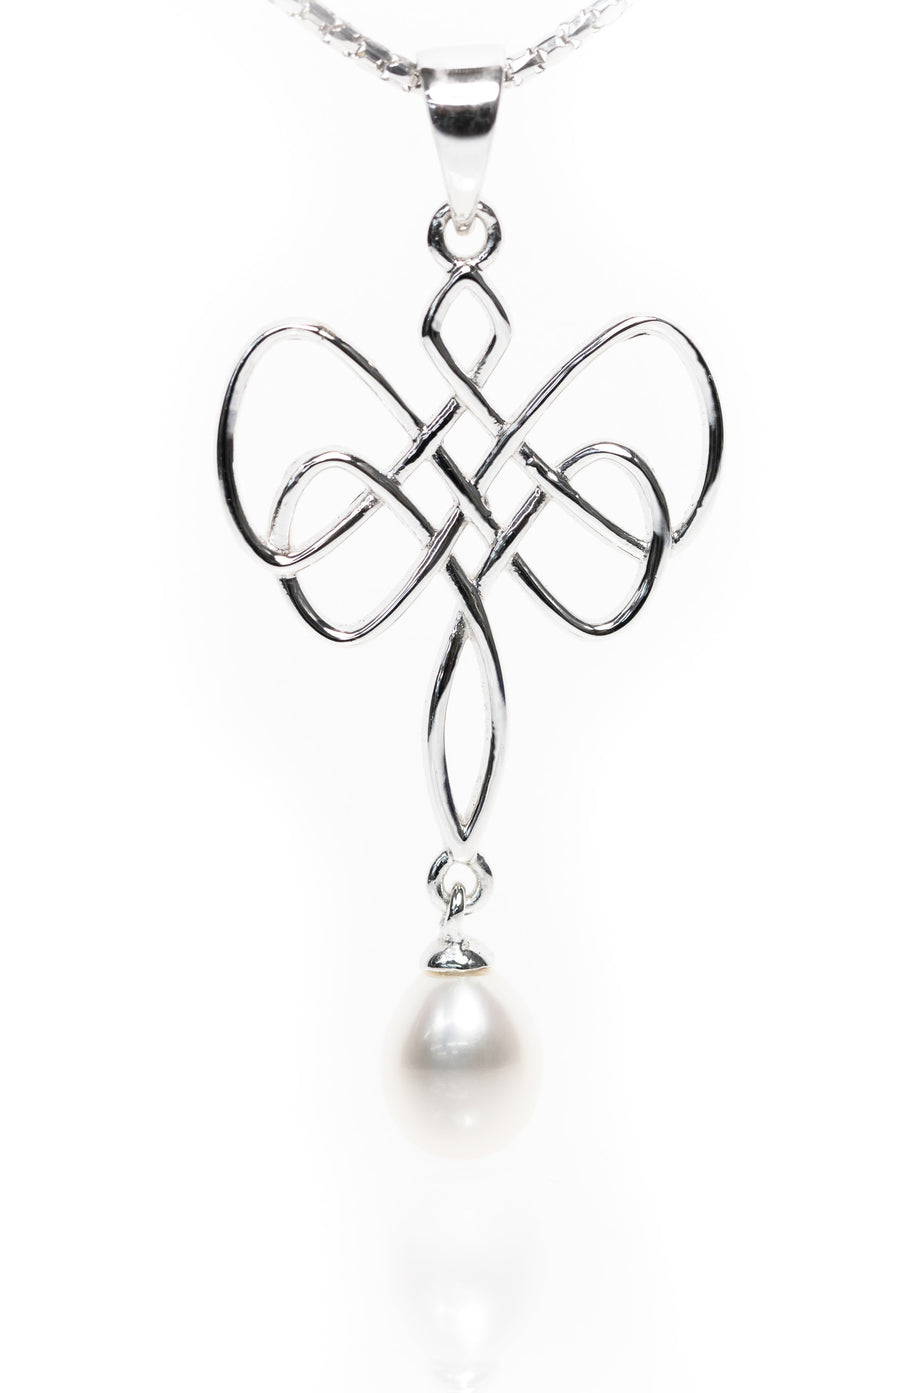 Drop Pearl Pendant from the Infinity Range